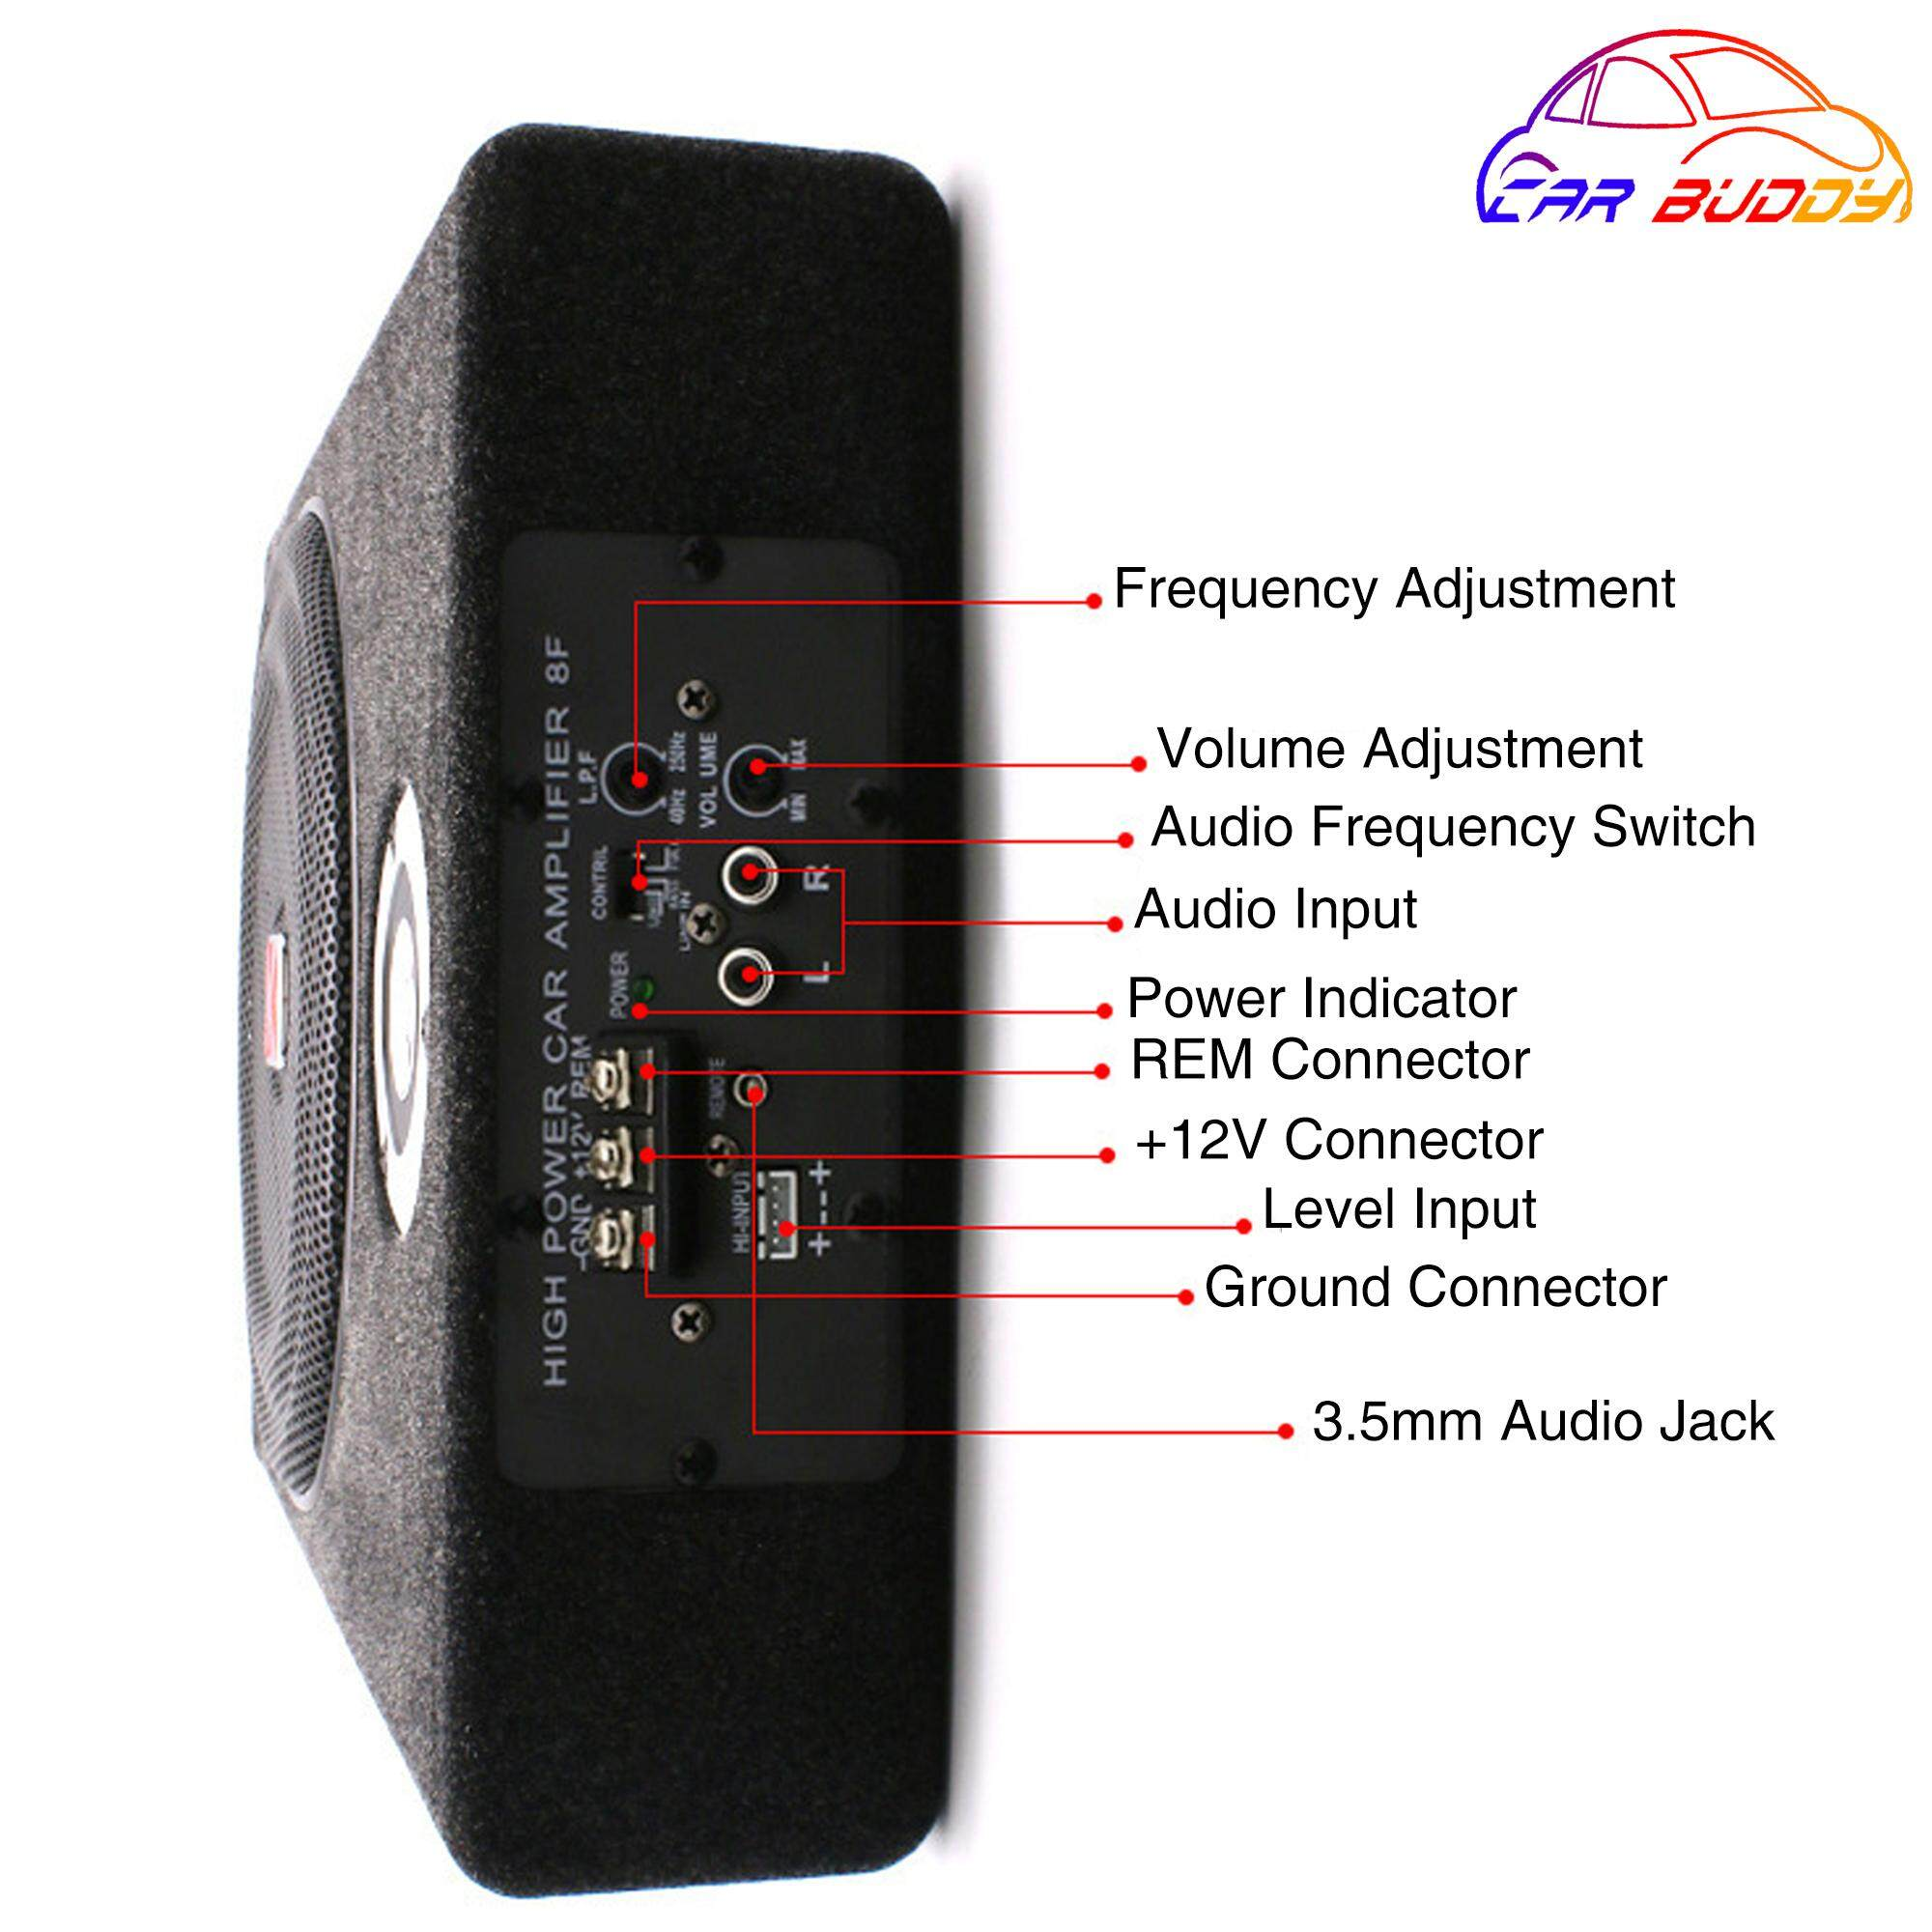 CAR BUDDY 8'' Car Underseat Super Slim Active Subwoofer Built in Amplifier  with Felt Wooden Body  High Quality Sub Woofer with High Quality Built-In